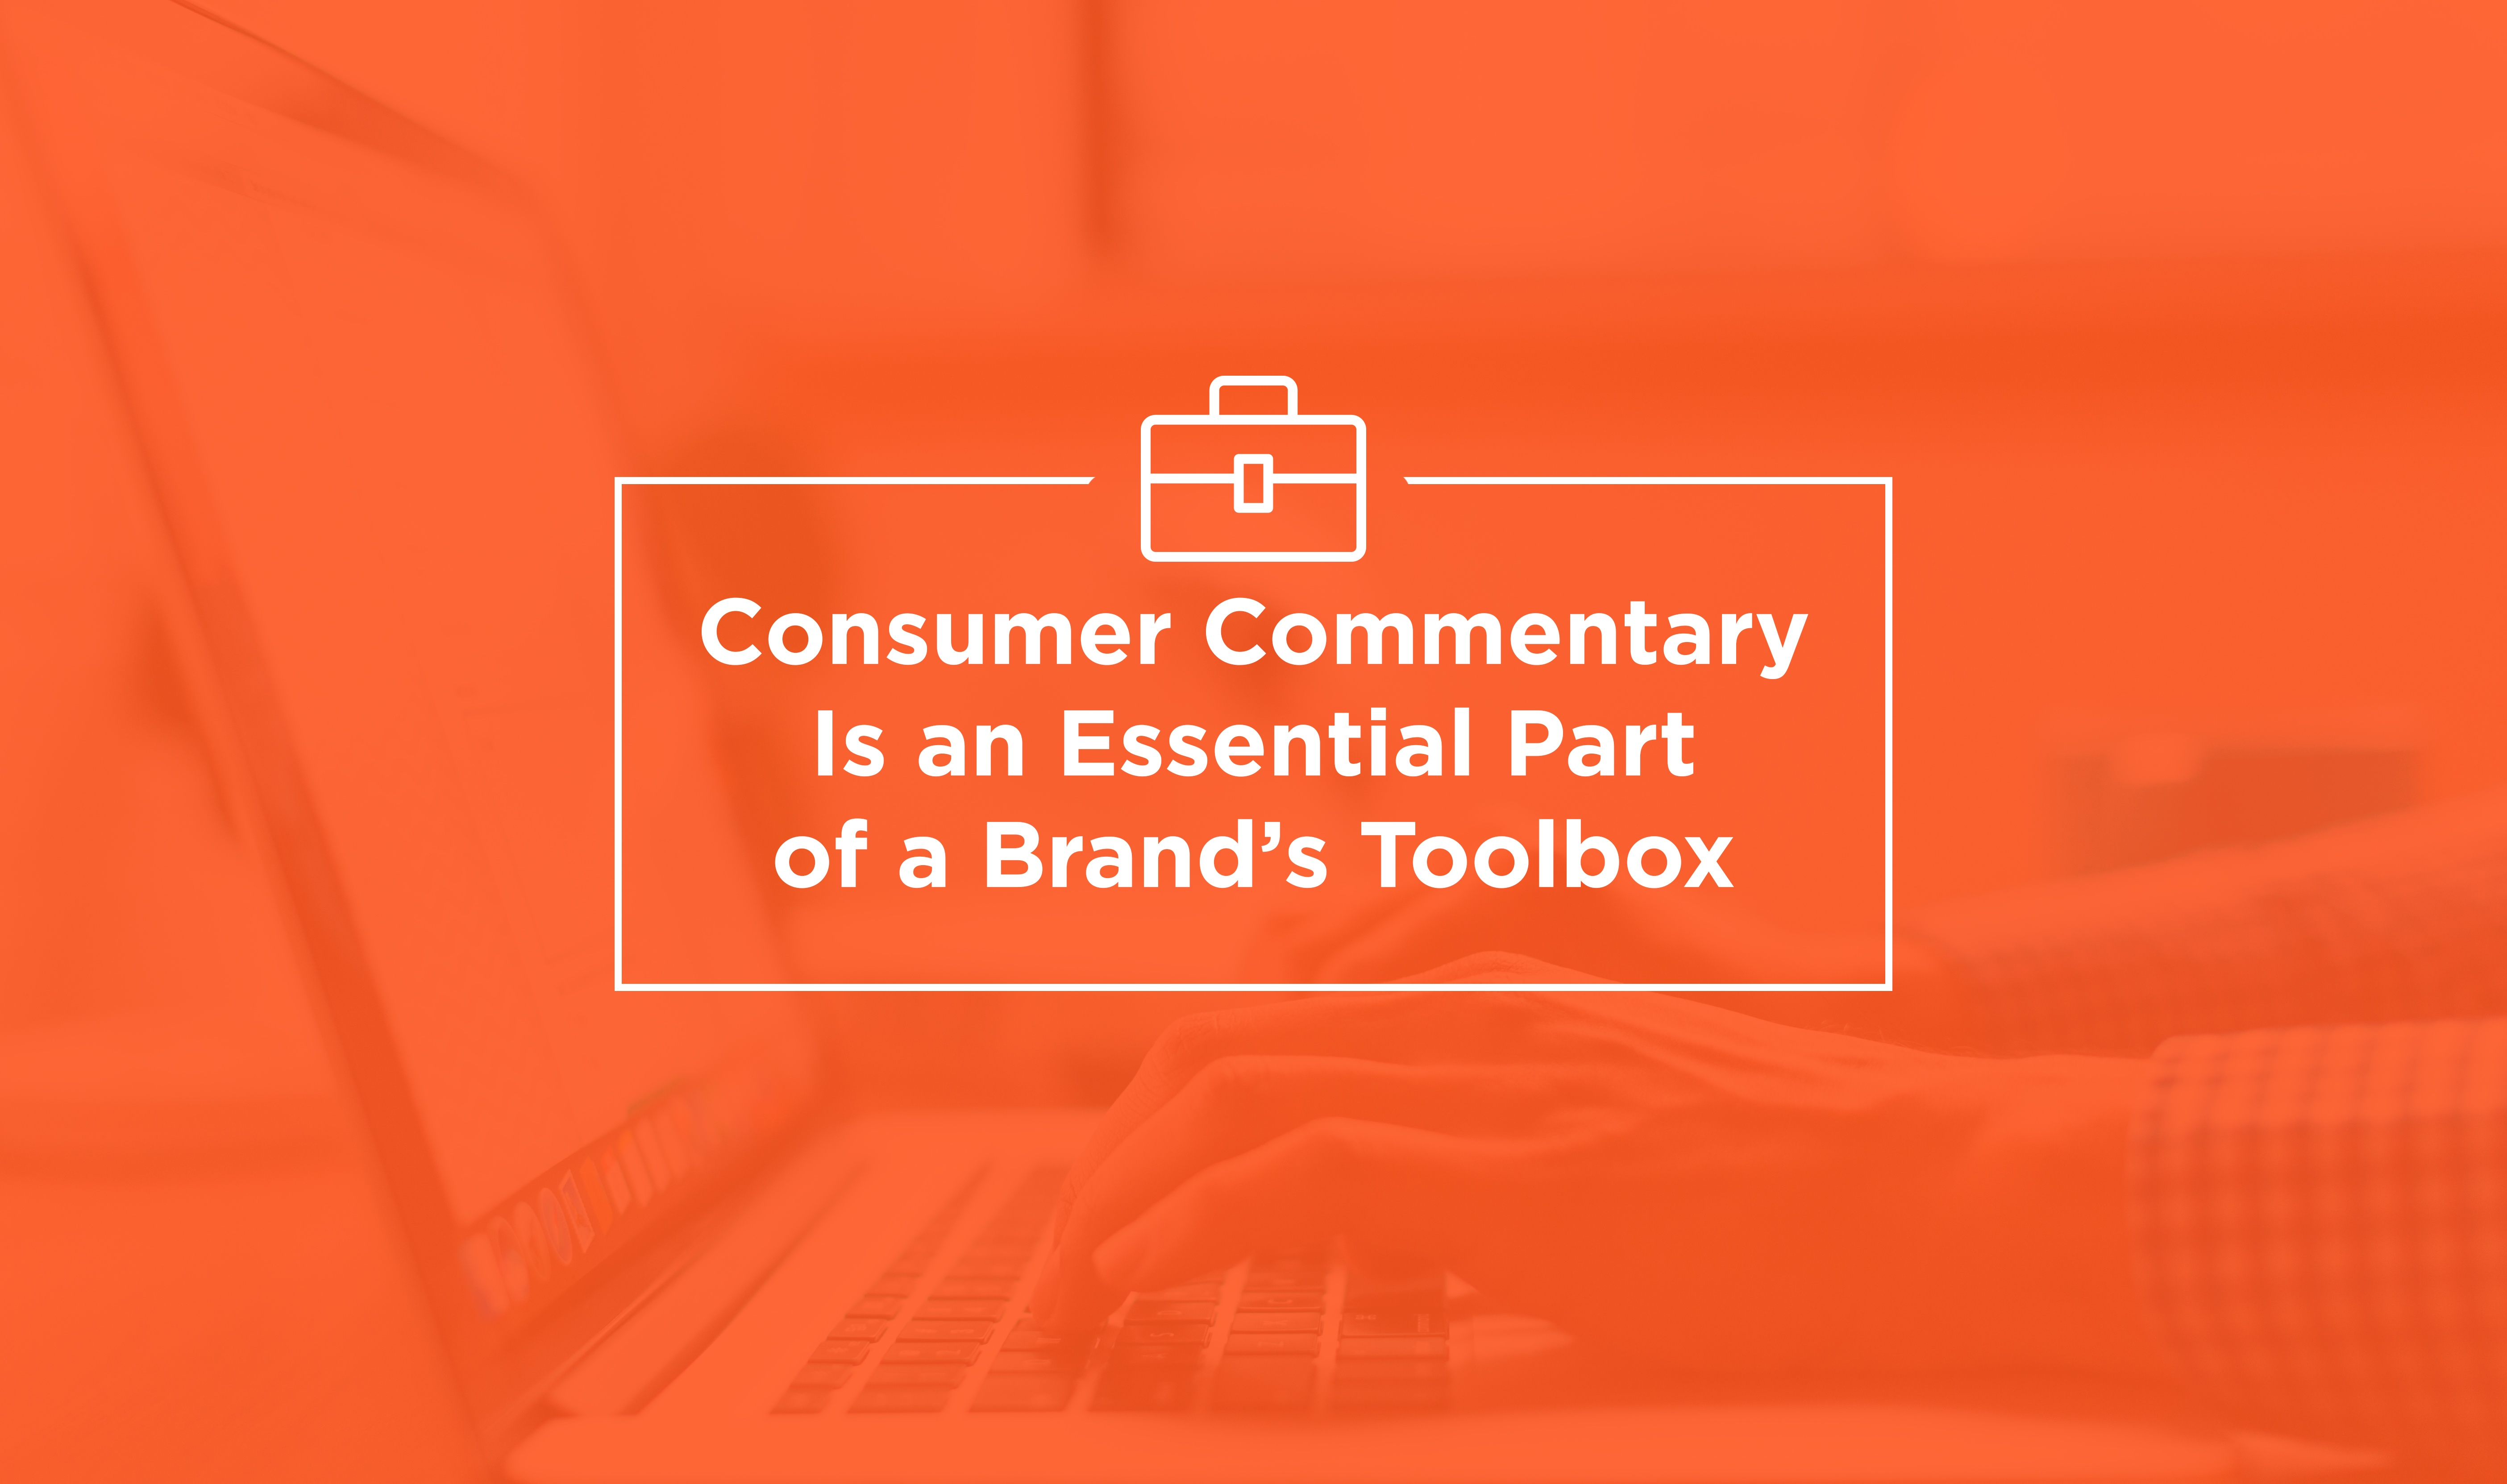 Consumer Commentary Is an Essential Part of a Brand's Toolbox